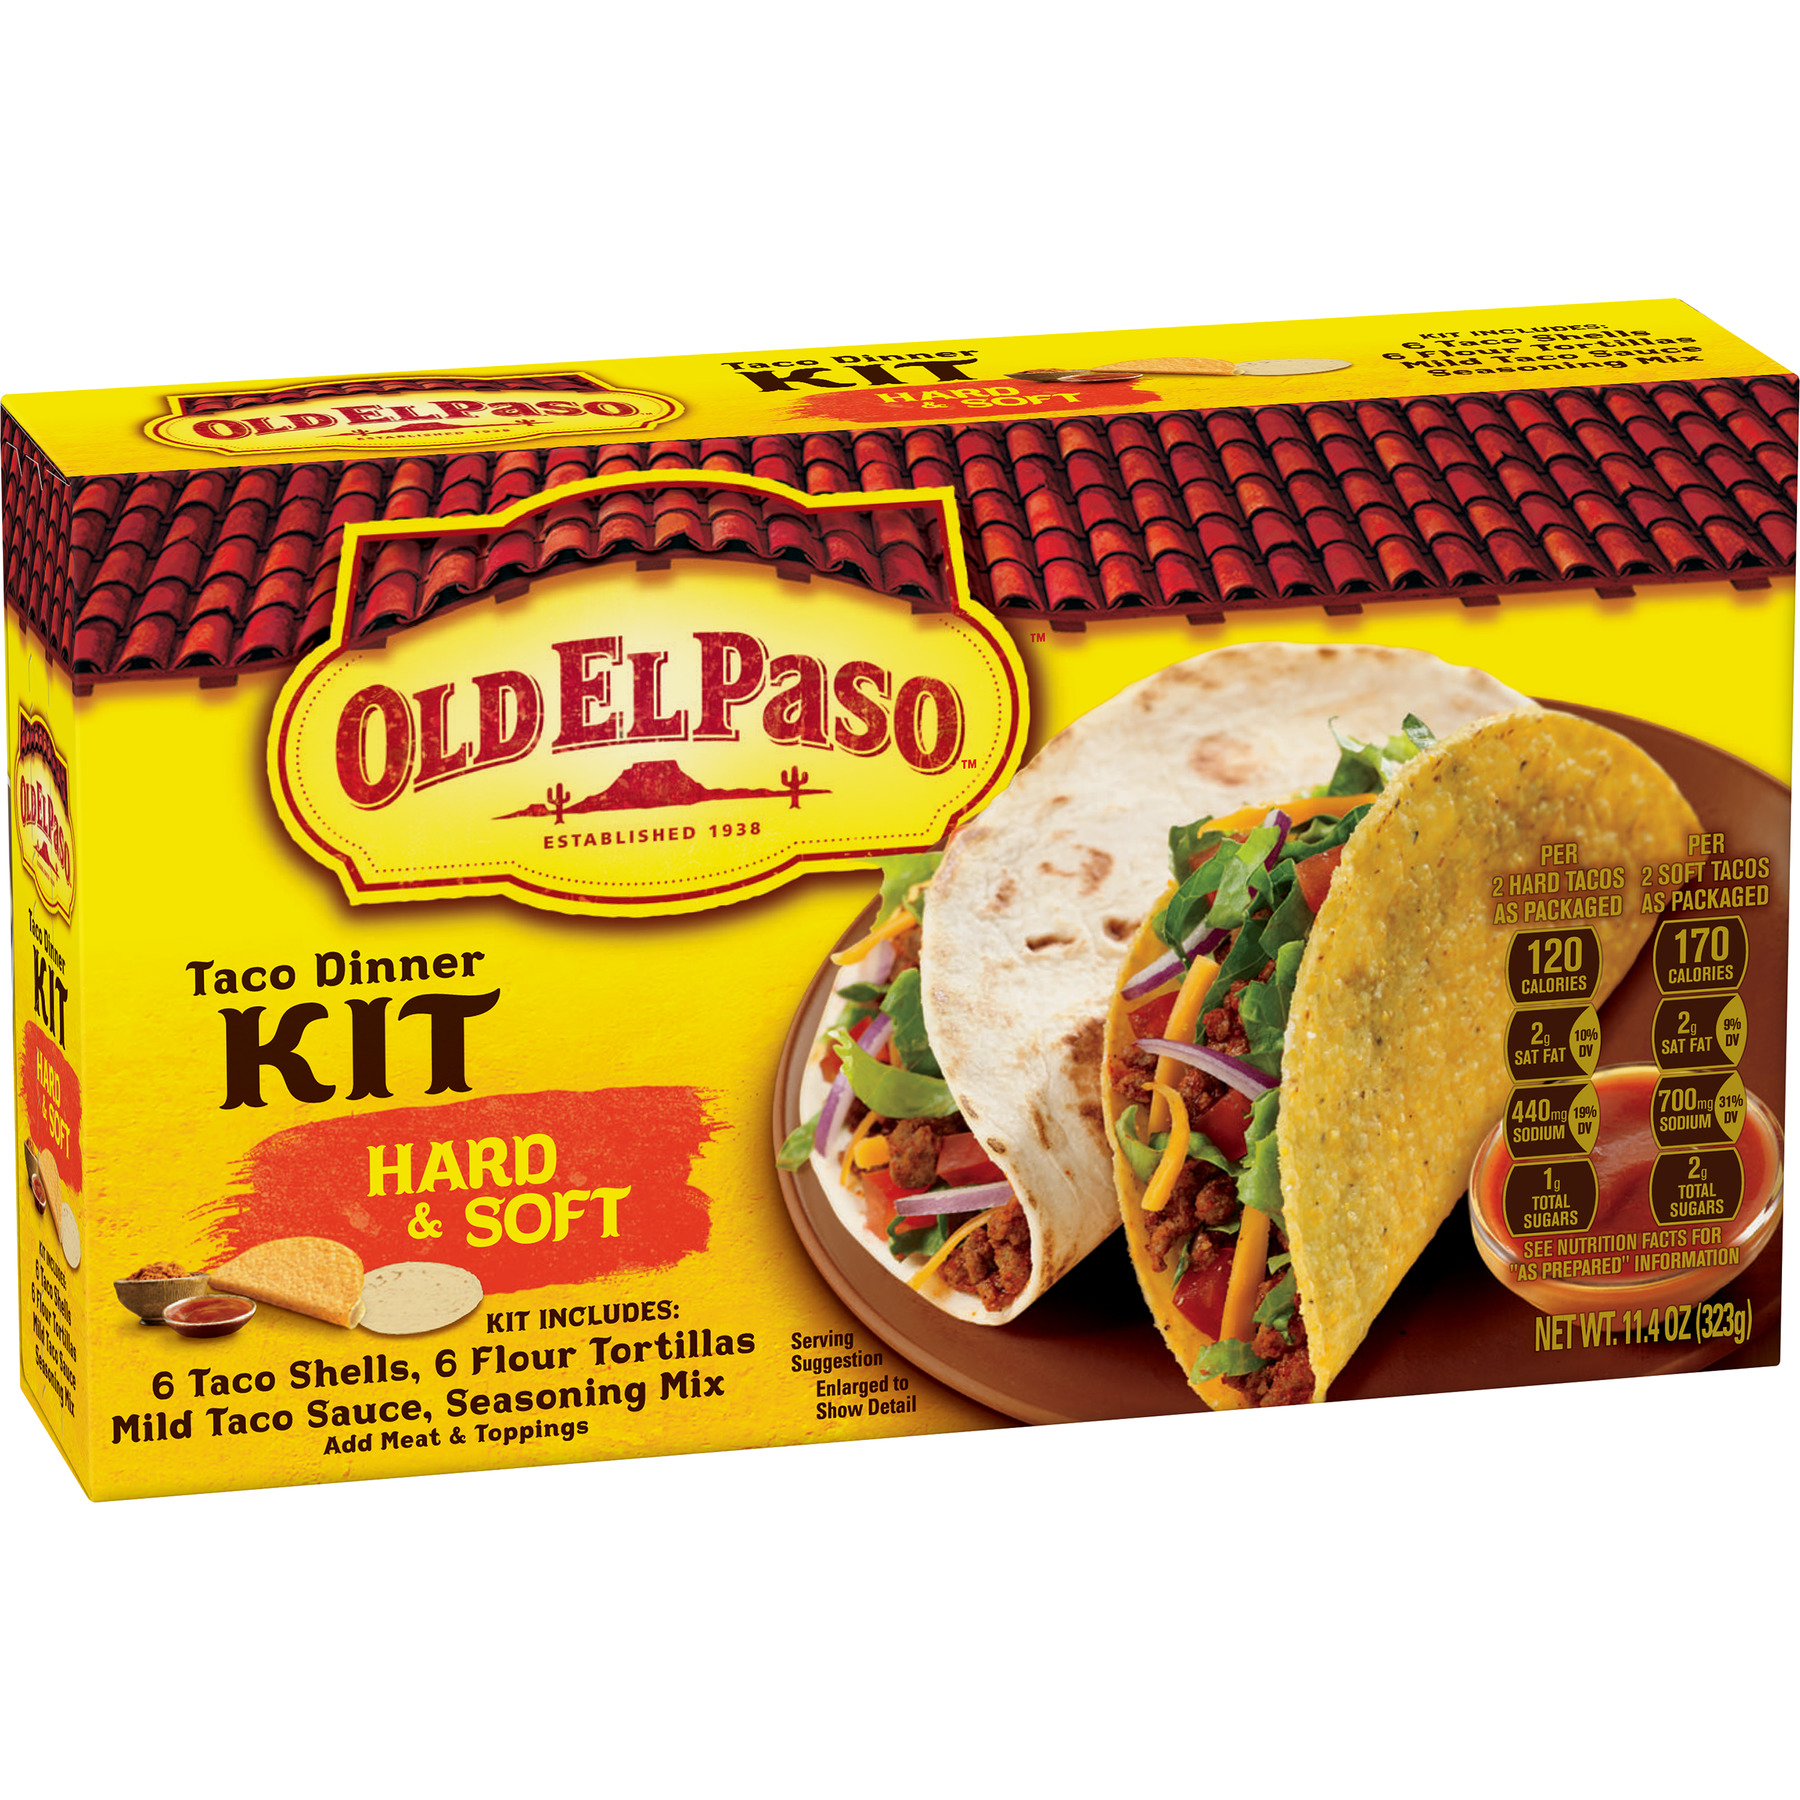 Old El Paso Hard And Soft Taco Dinner Kit, 11.4 oz